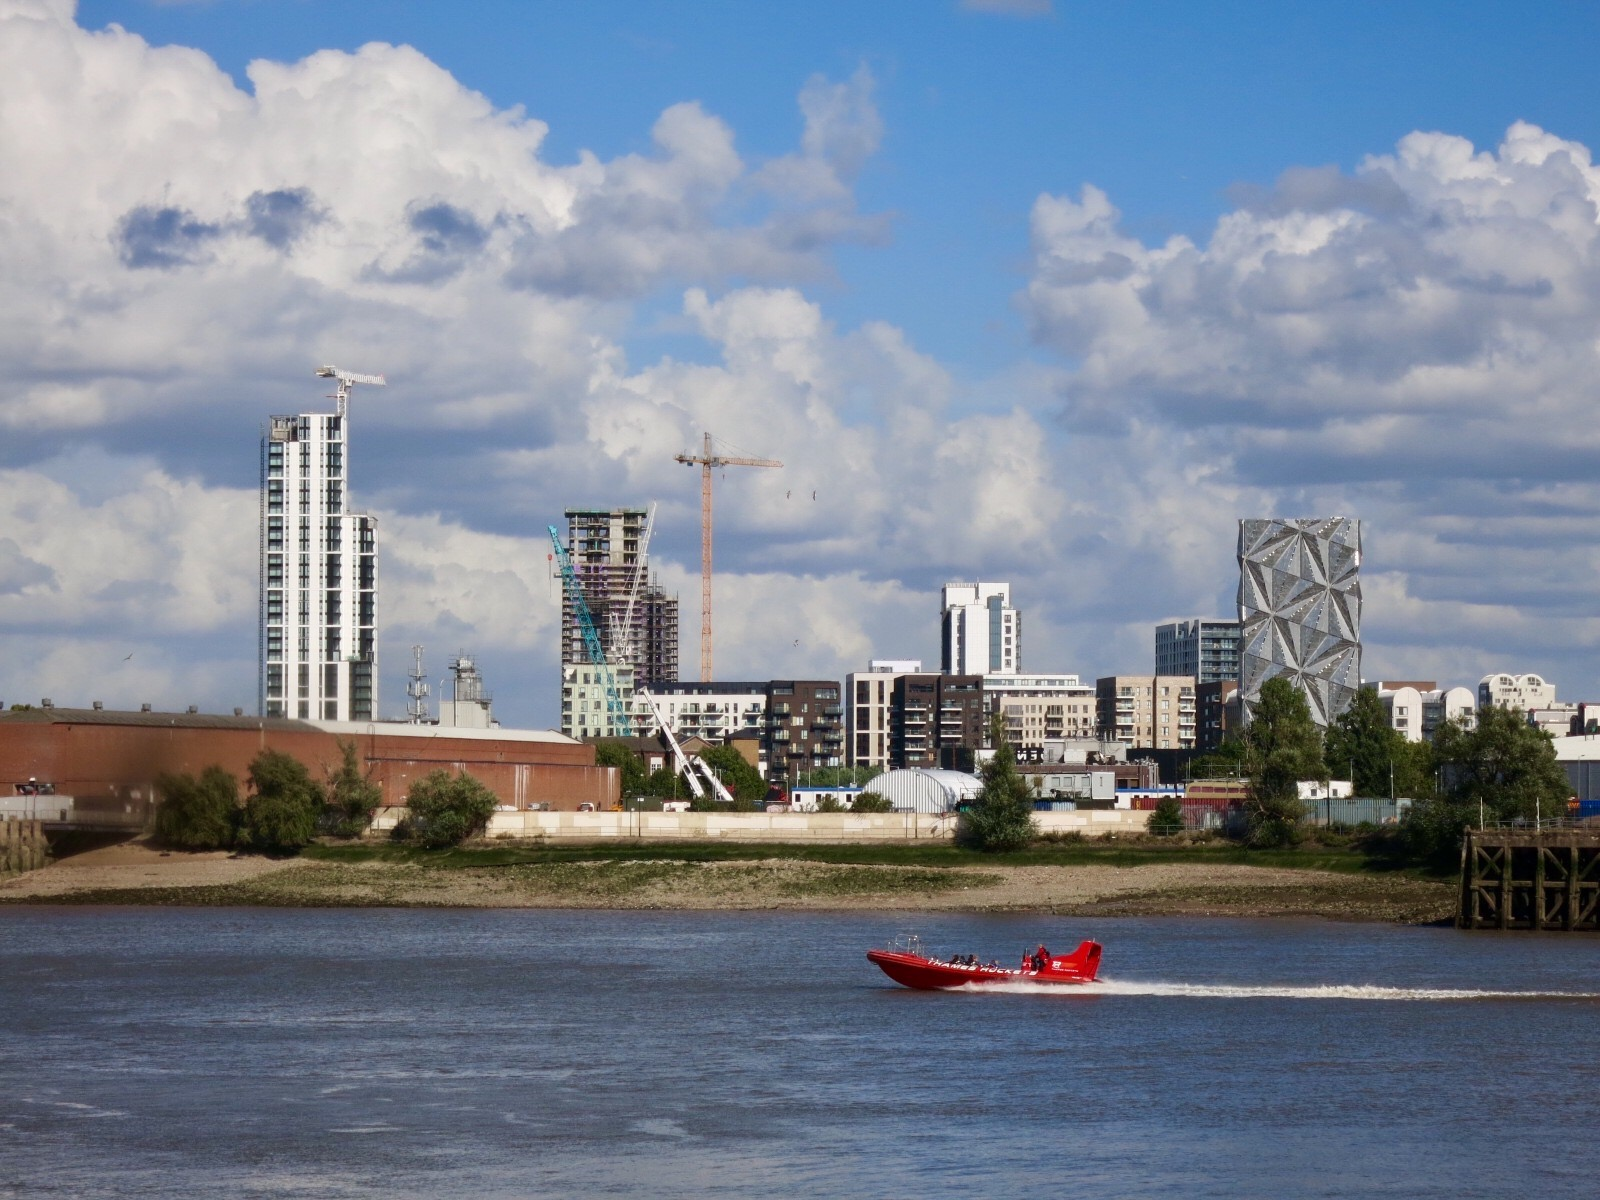 Greenwich Peninsula's Lower Riverside developments, including The Waterman and Lighterman towers.